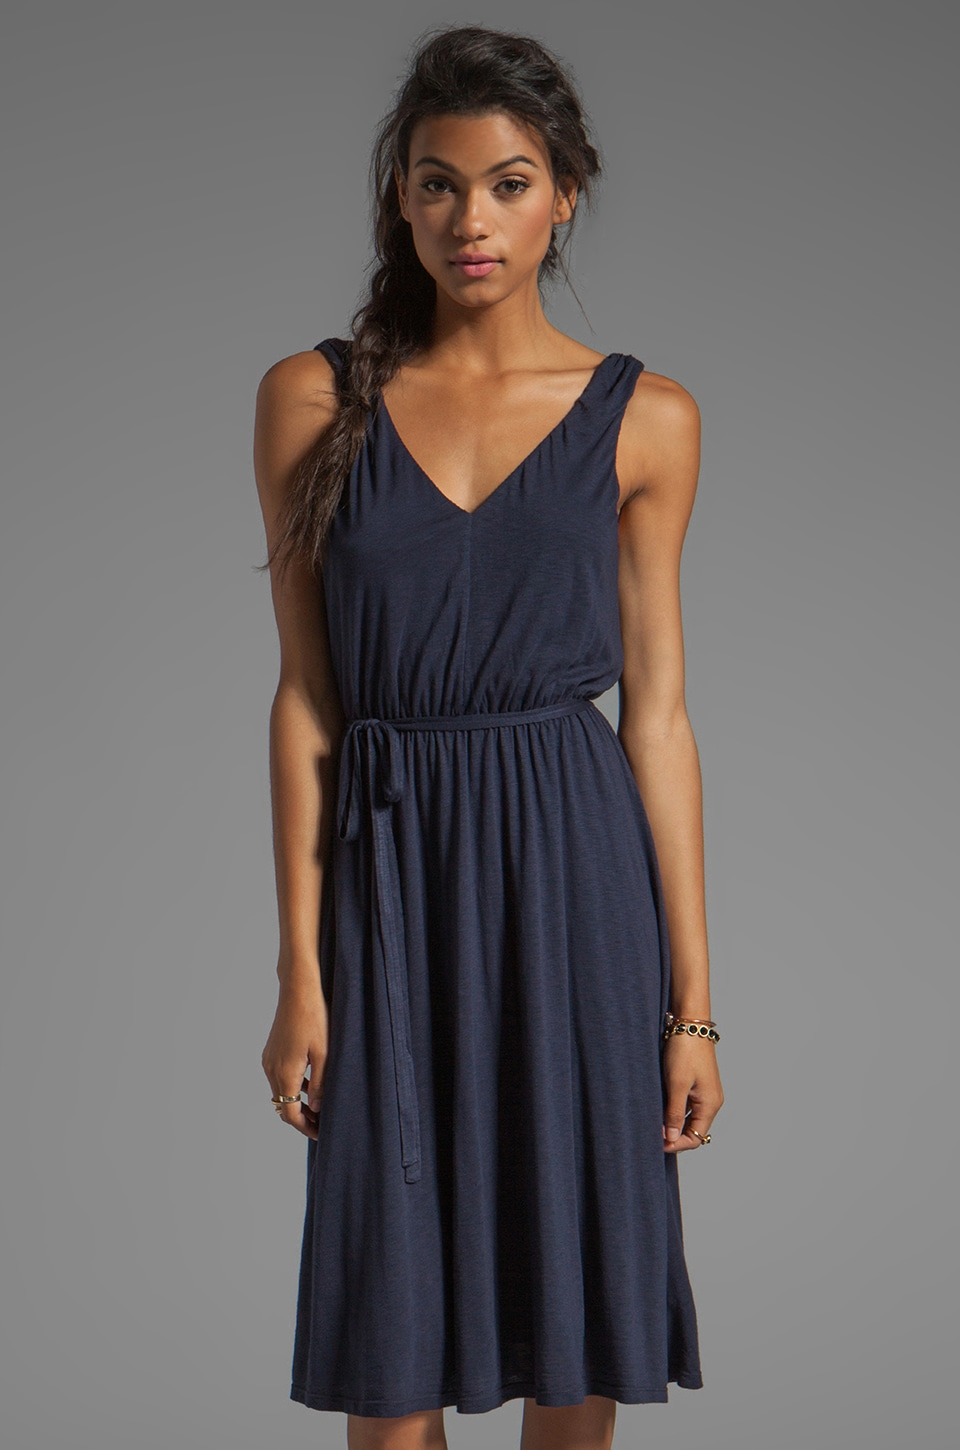 Velvet by Graham & Spencer Karlee Luxe Slub Dress in Ink